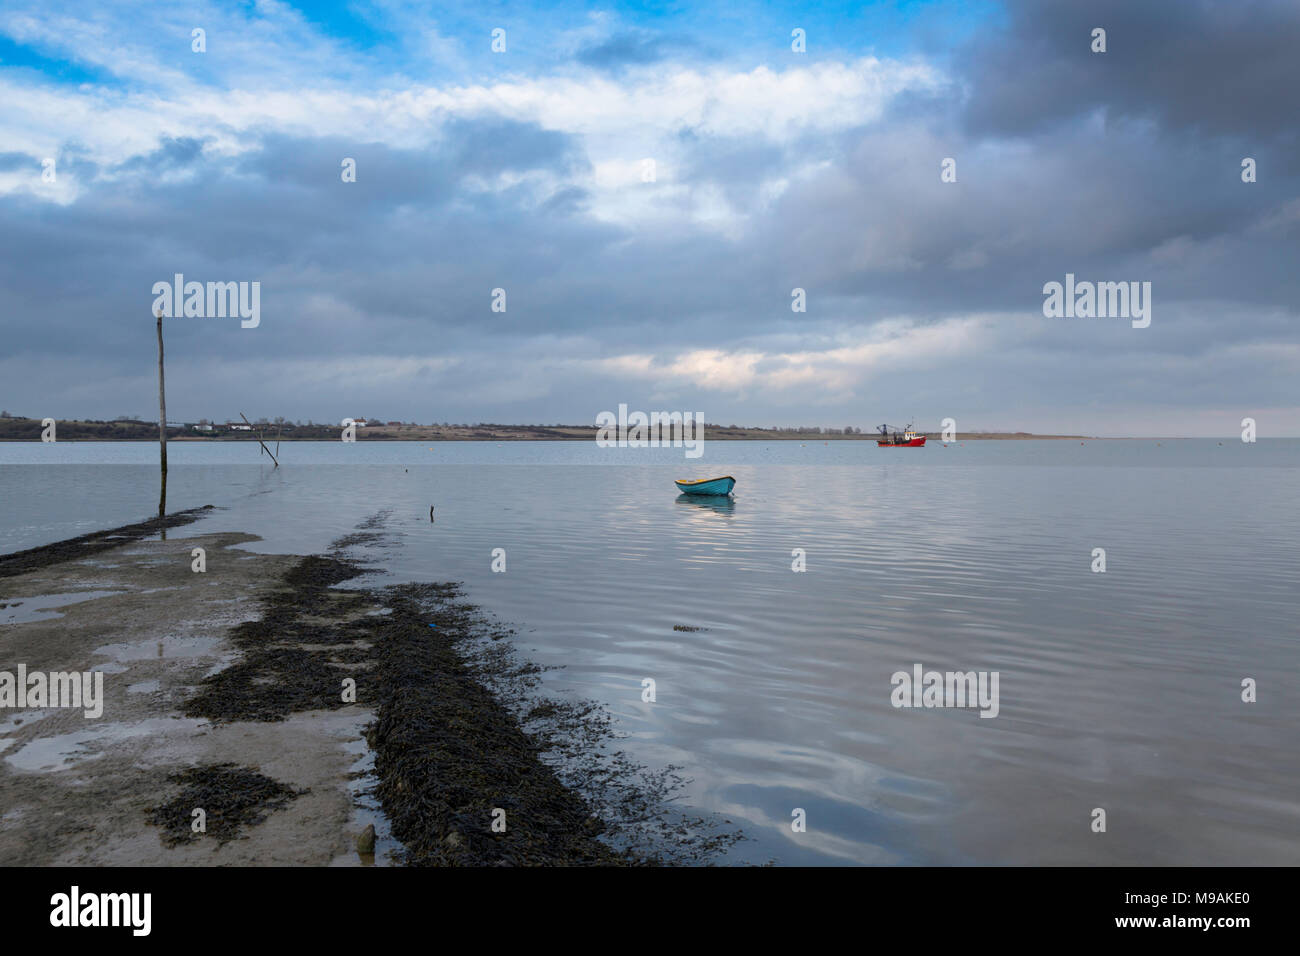 Looking across the Swale from the slipway towards the Isle of Sheppey & two small boats from Kent Wildlife Trust's Oare Marshes, Faversham, Kent, UK. Stock Photo